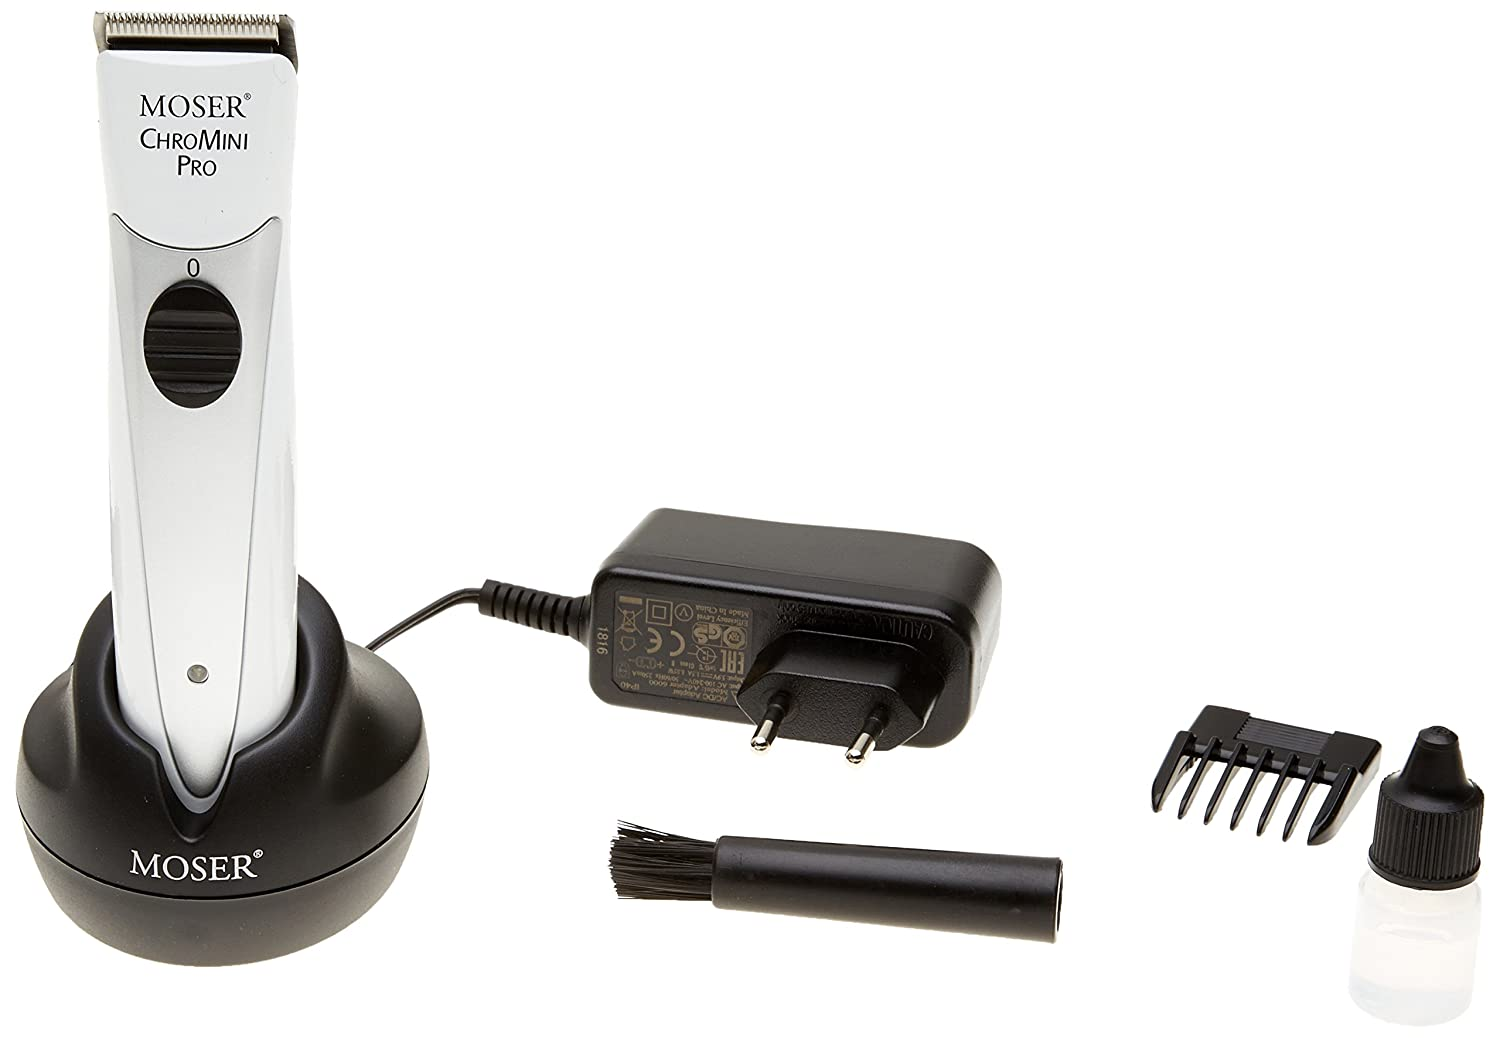 MOSER ChroMini Pro 1591 White Professional Cordless Hair Trimmer 100-240V